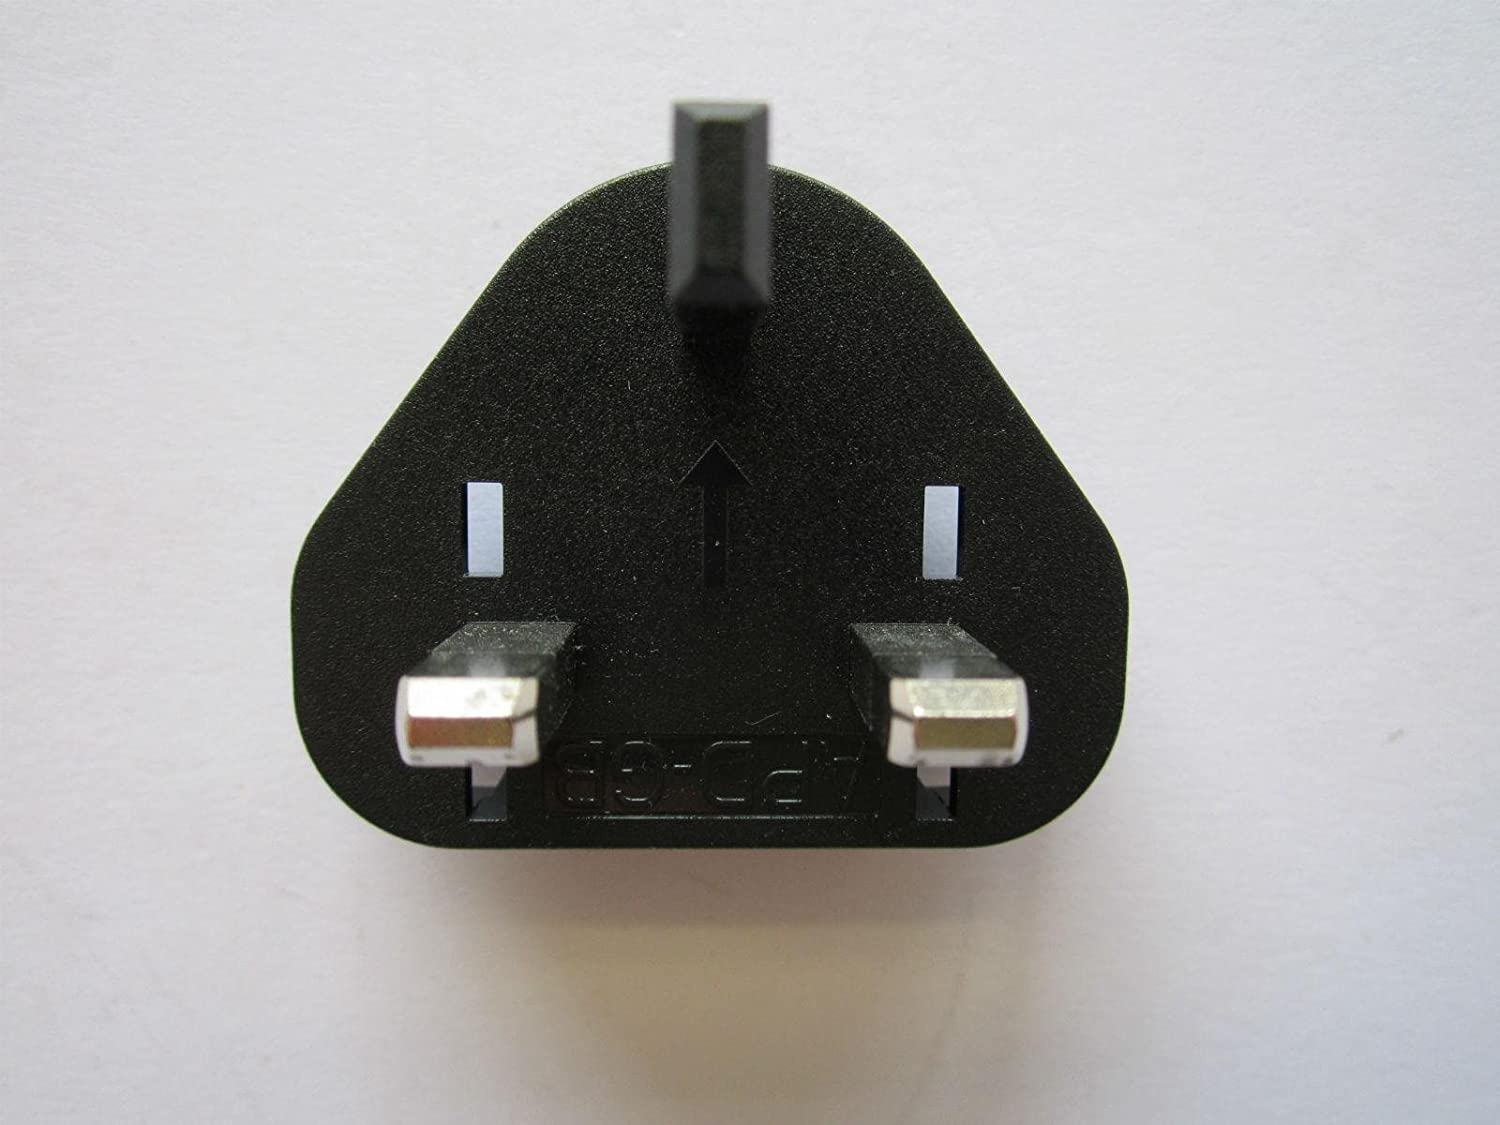 APD UK Slide Attachment Plug for Asian Power Devices APD-GB AC Power Adaptor